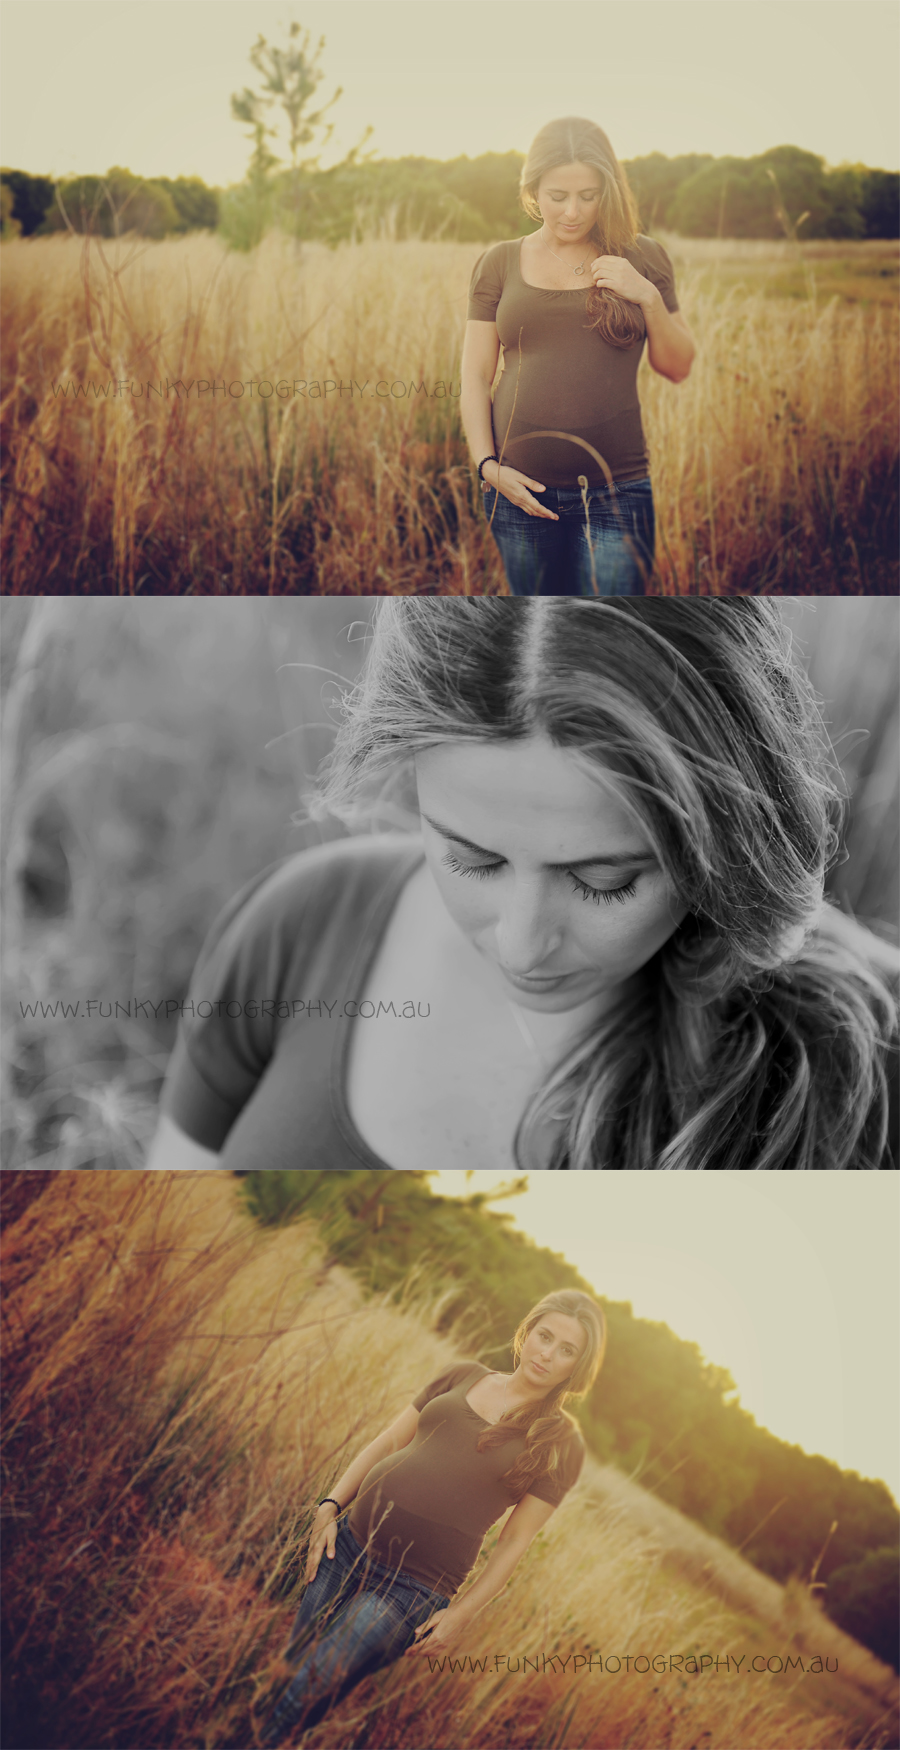 pregnancy photos of a woman in a field vintage styled